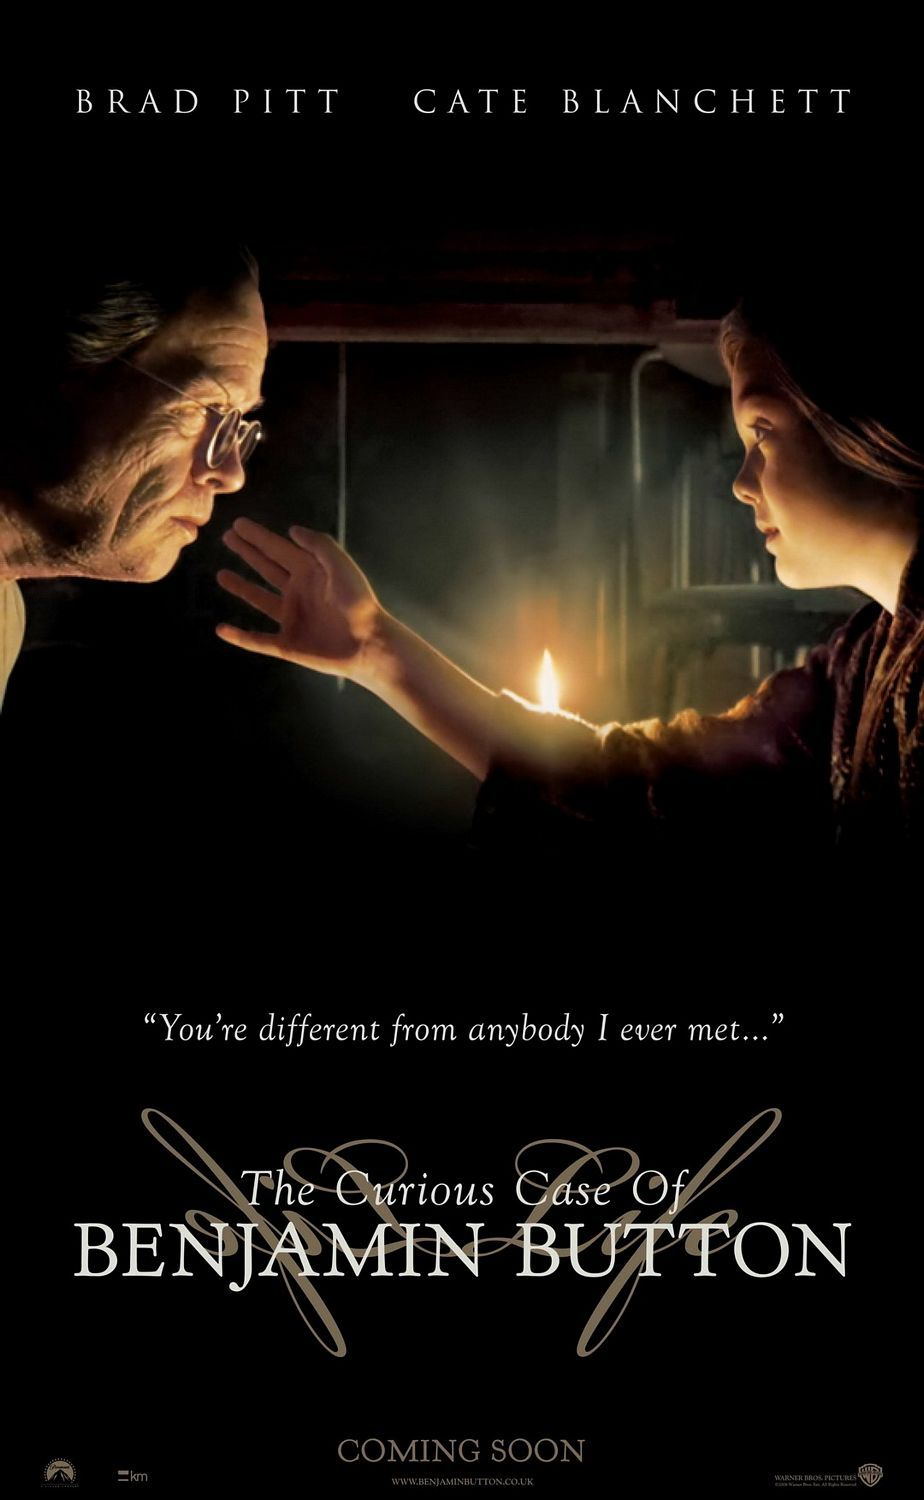 The Curious Case Of Benjamin Button 2008 This Is An Interesting One Brad Pitt Internet Movies Cate Blanchett